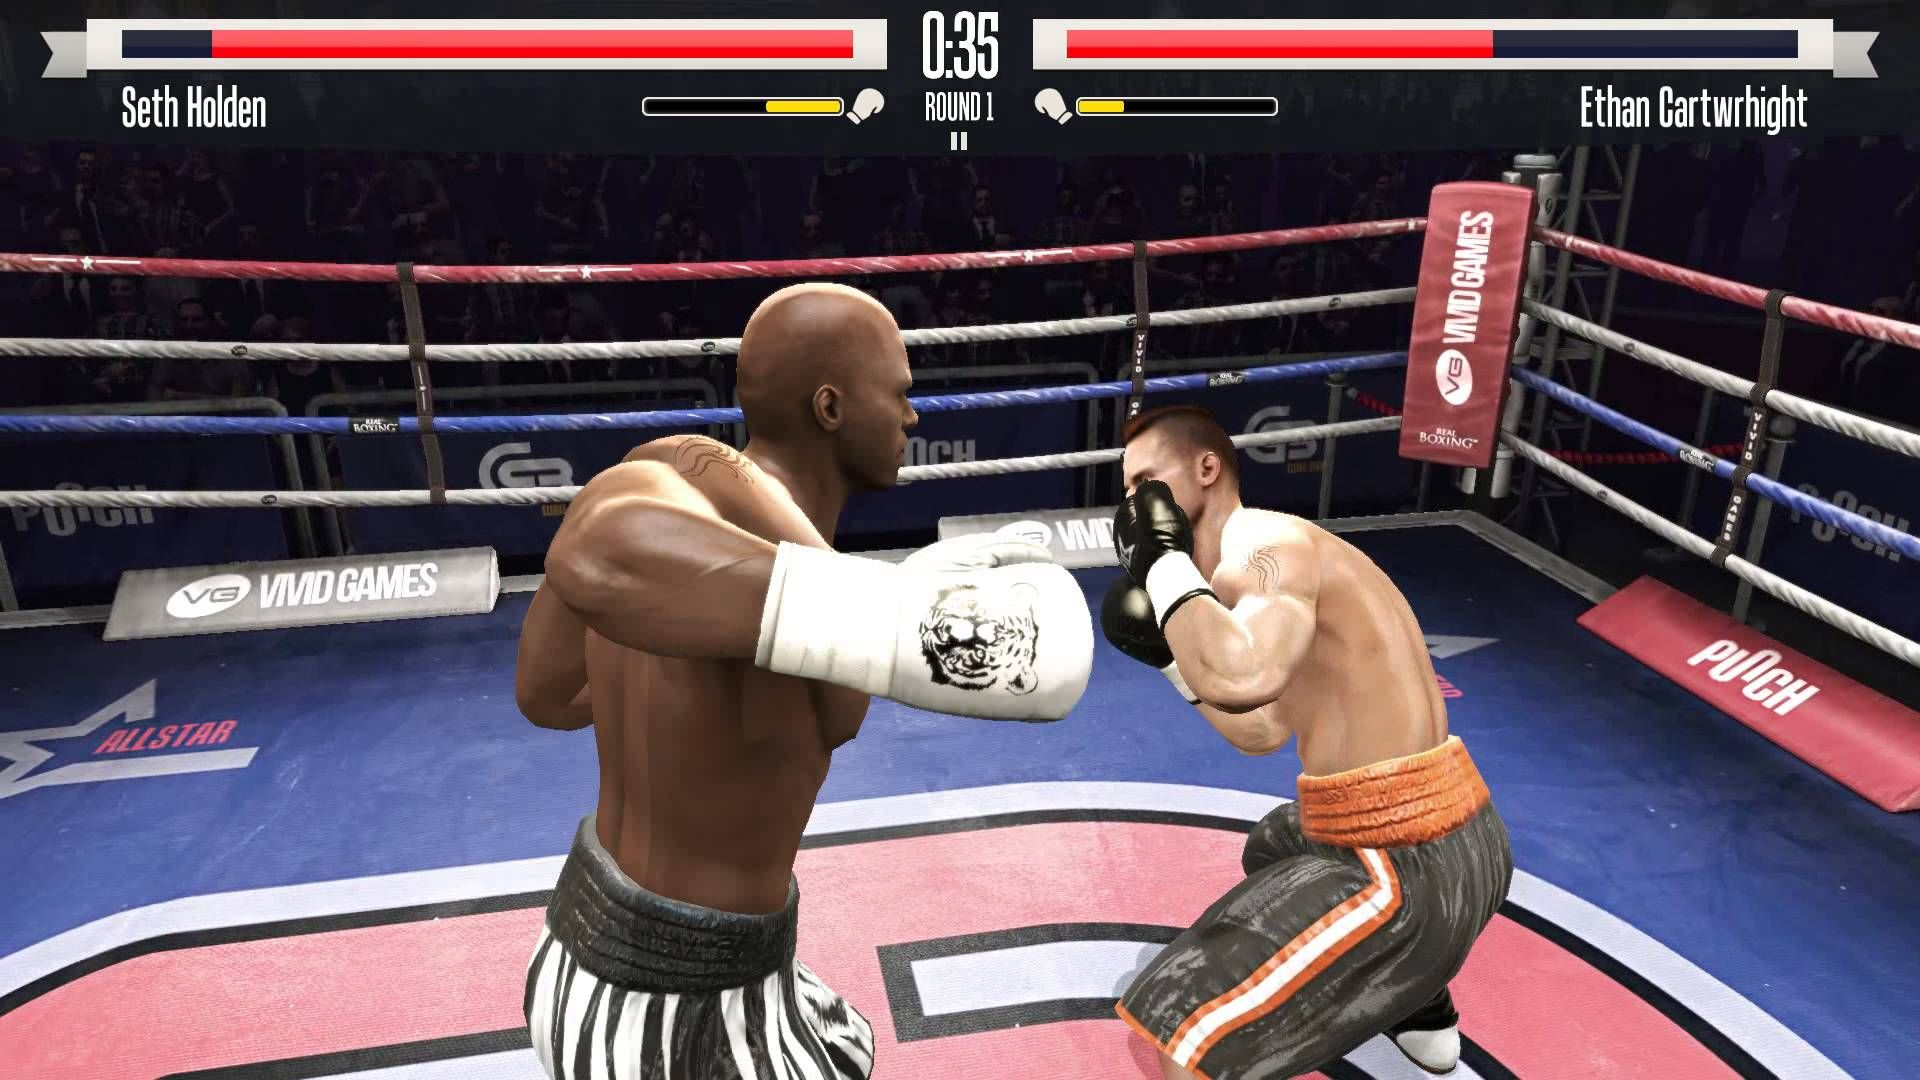 Real Boxing Free Download PC Games   PC Game Download   Pinterest     Real Boxing Free Download PC Games